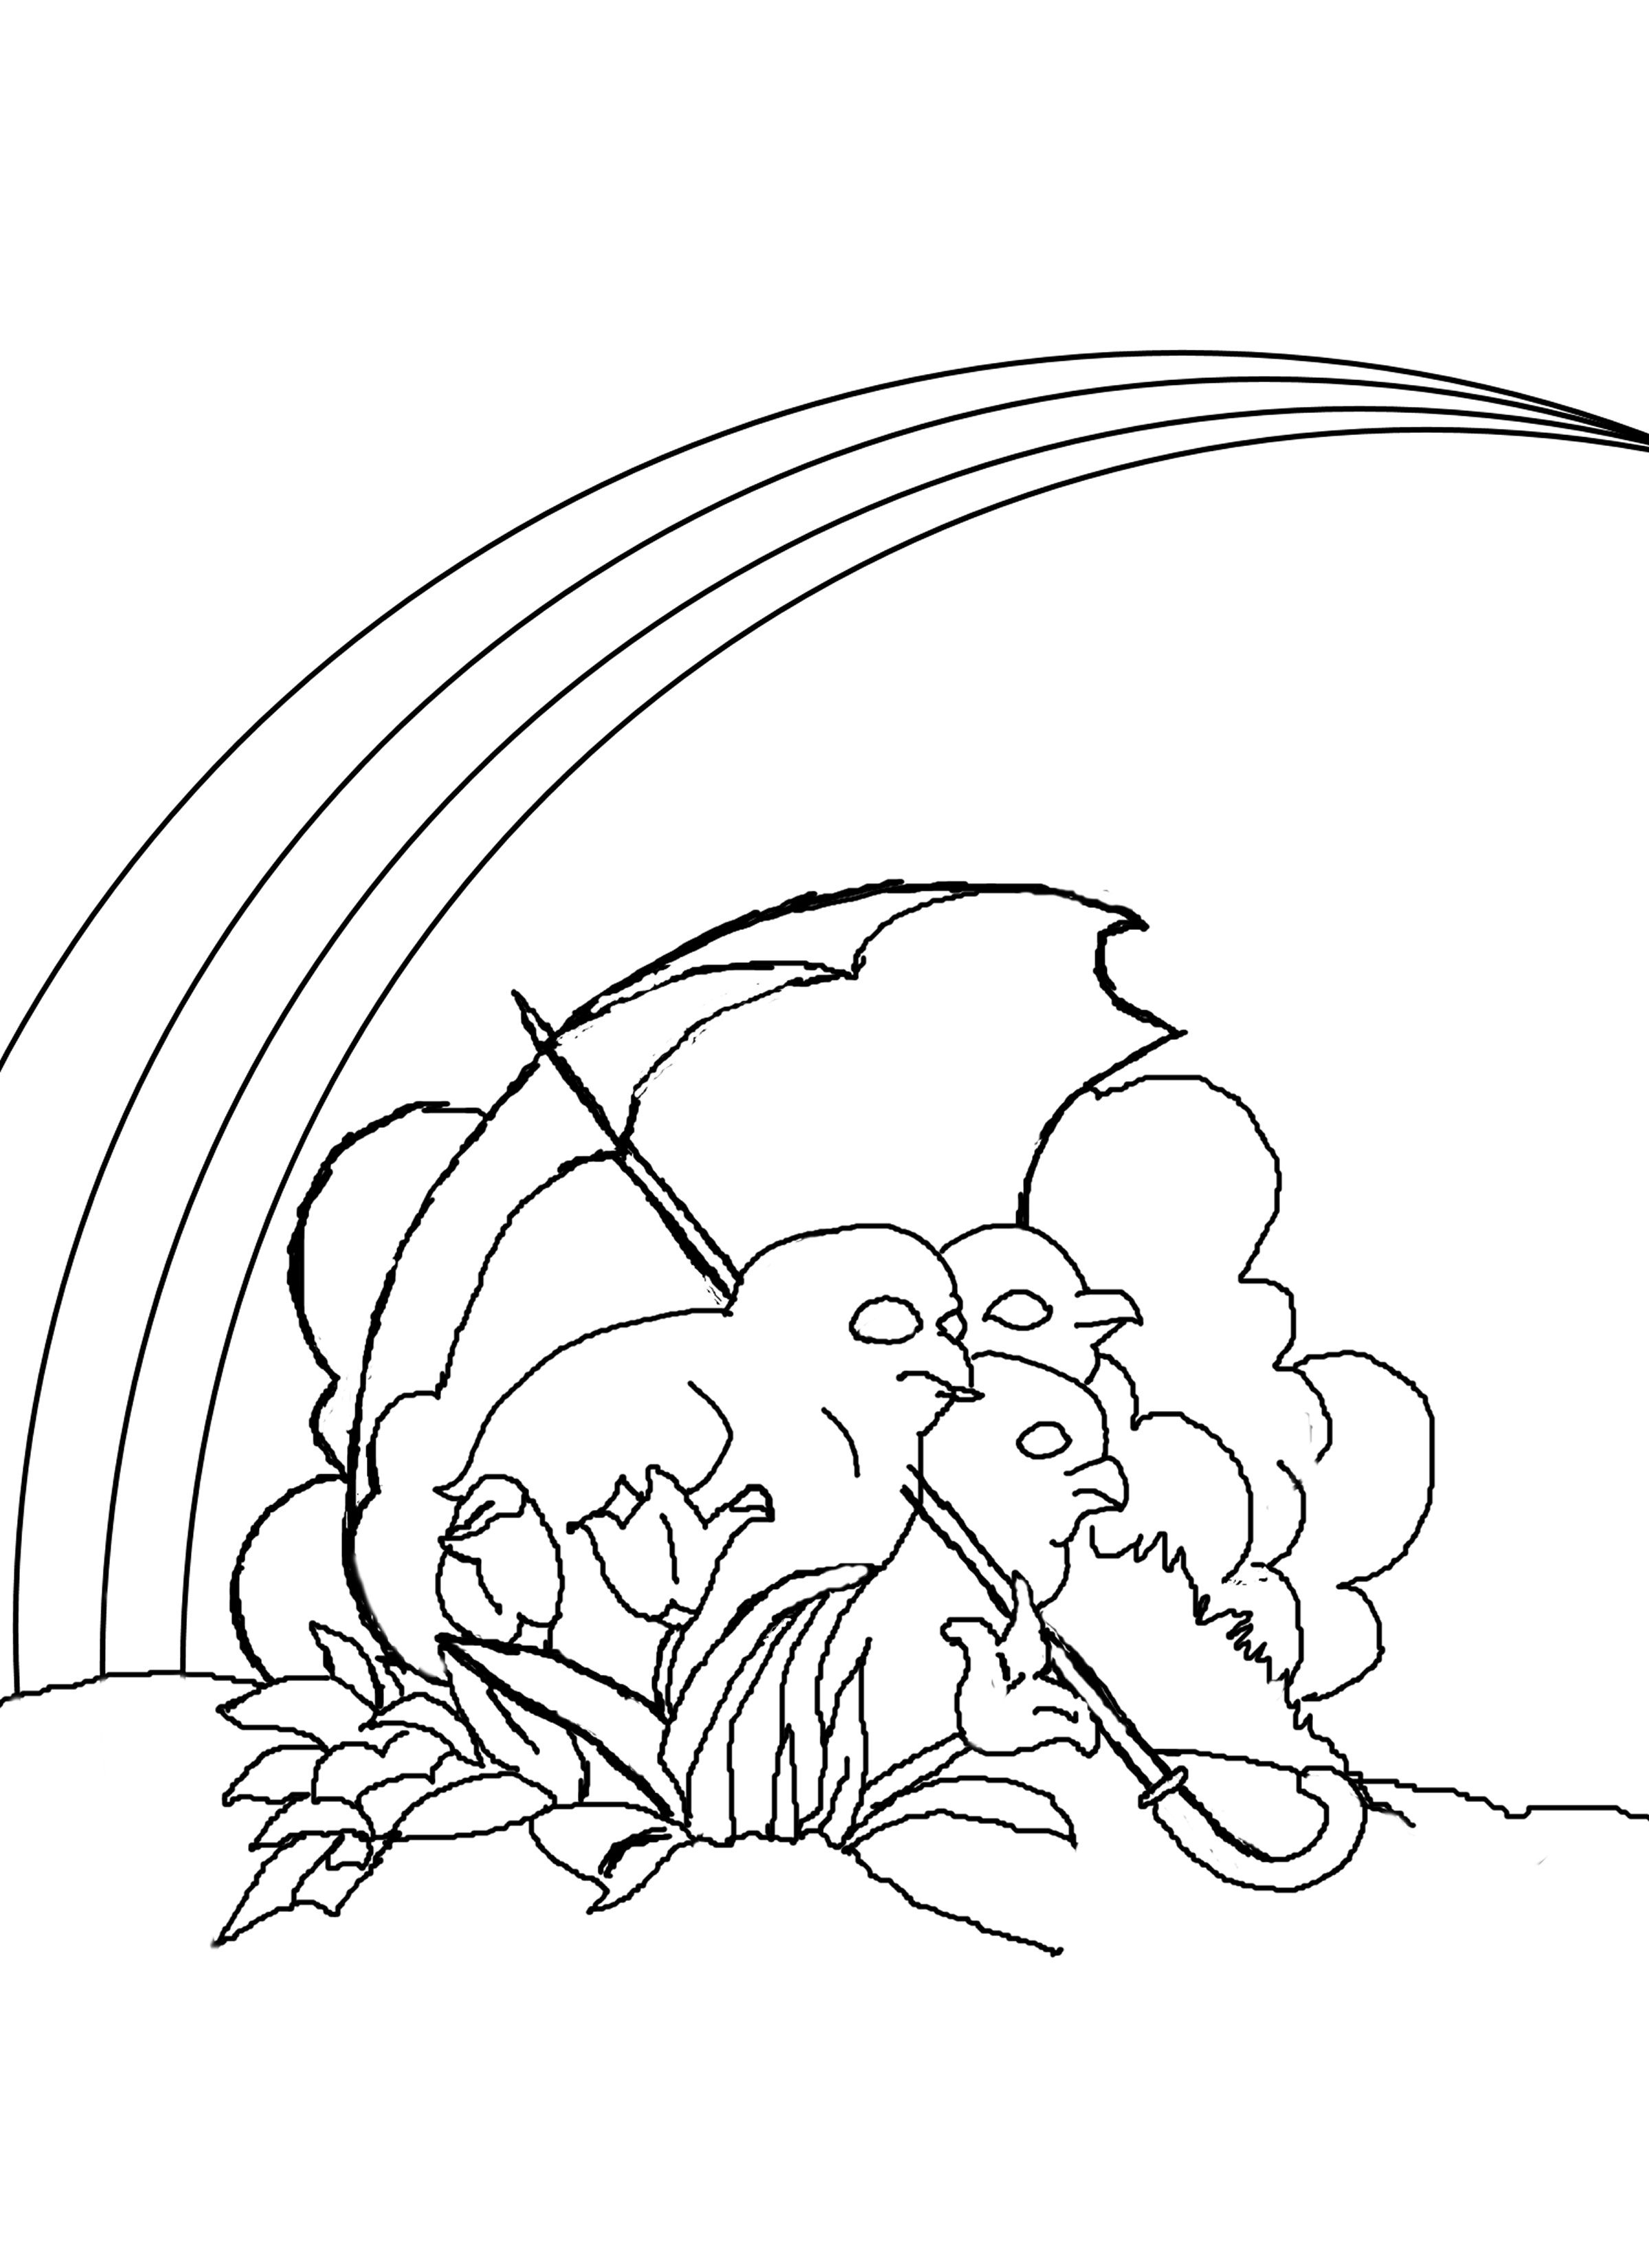 coloring rainbow pages - photo#21